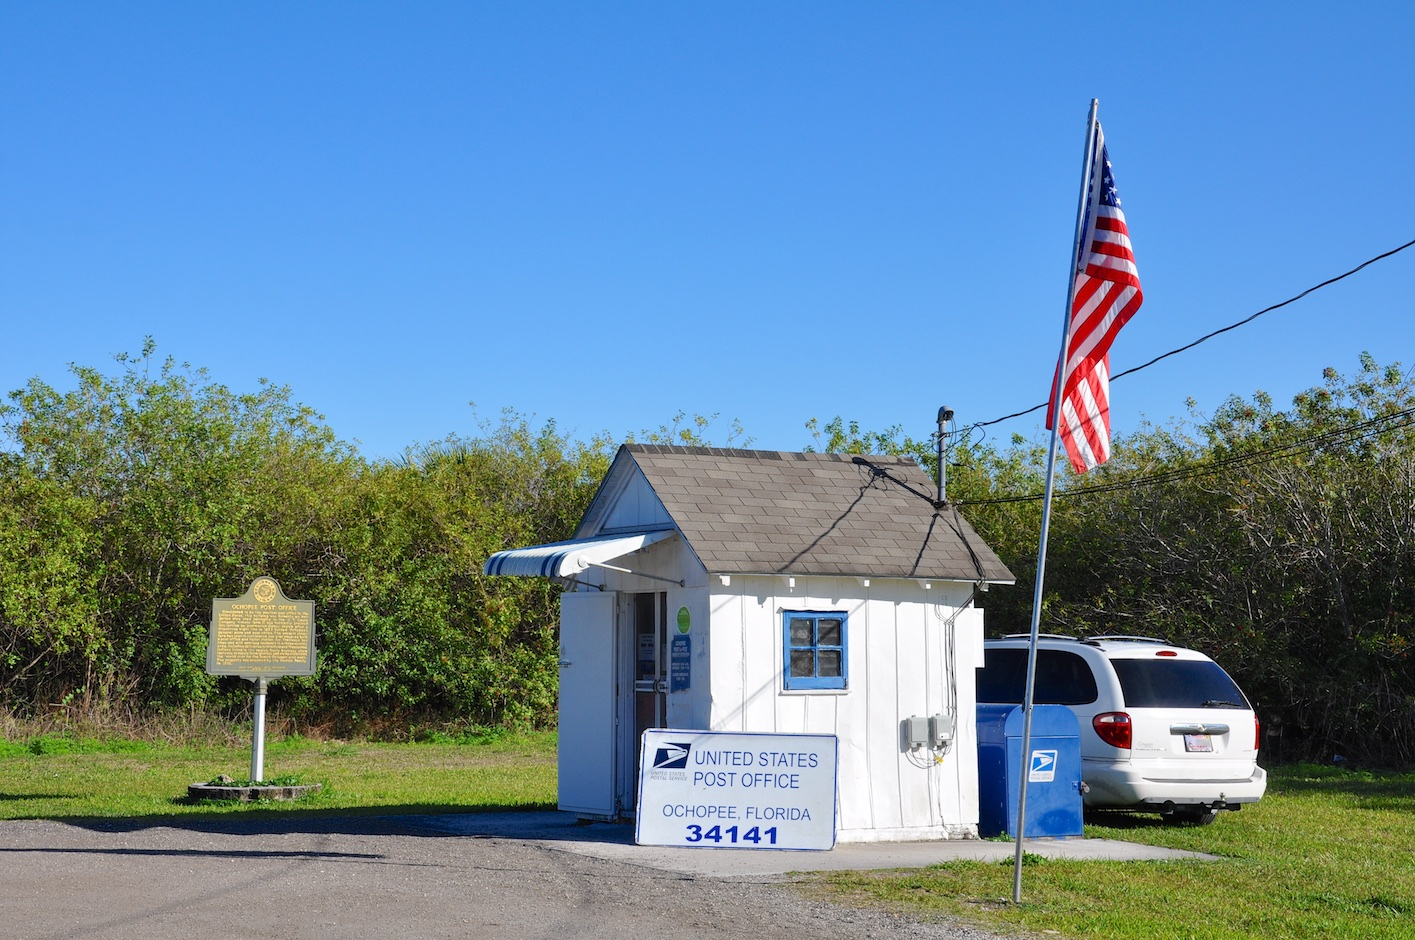 Post Office of Ochopee